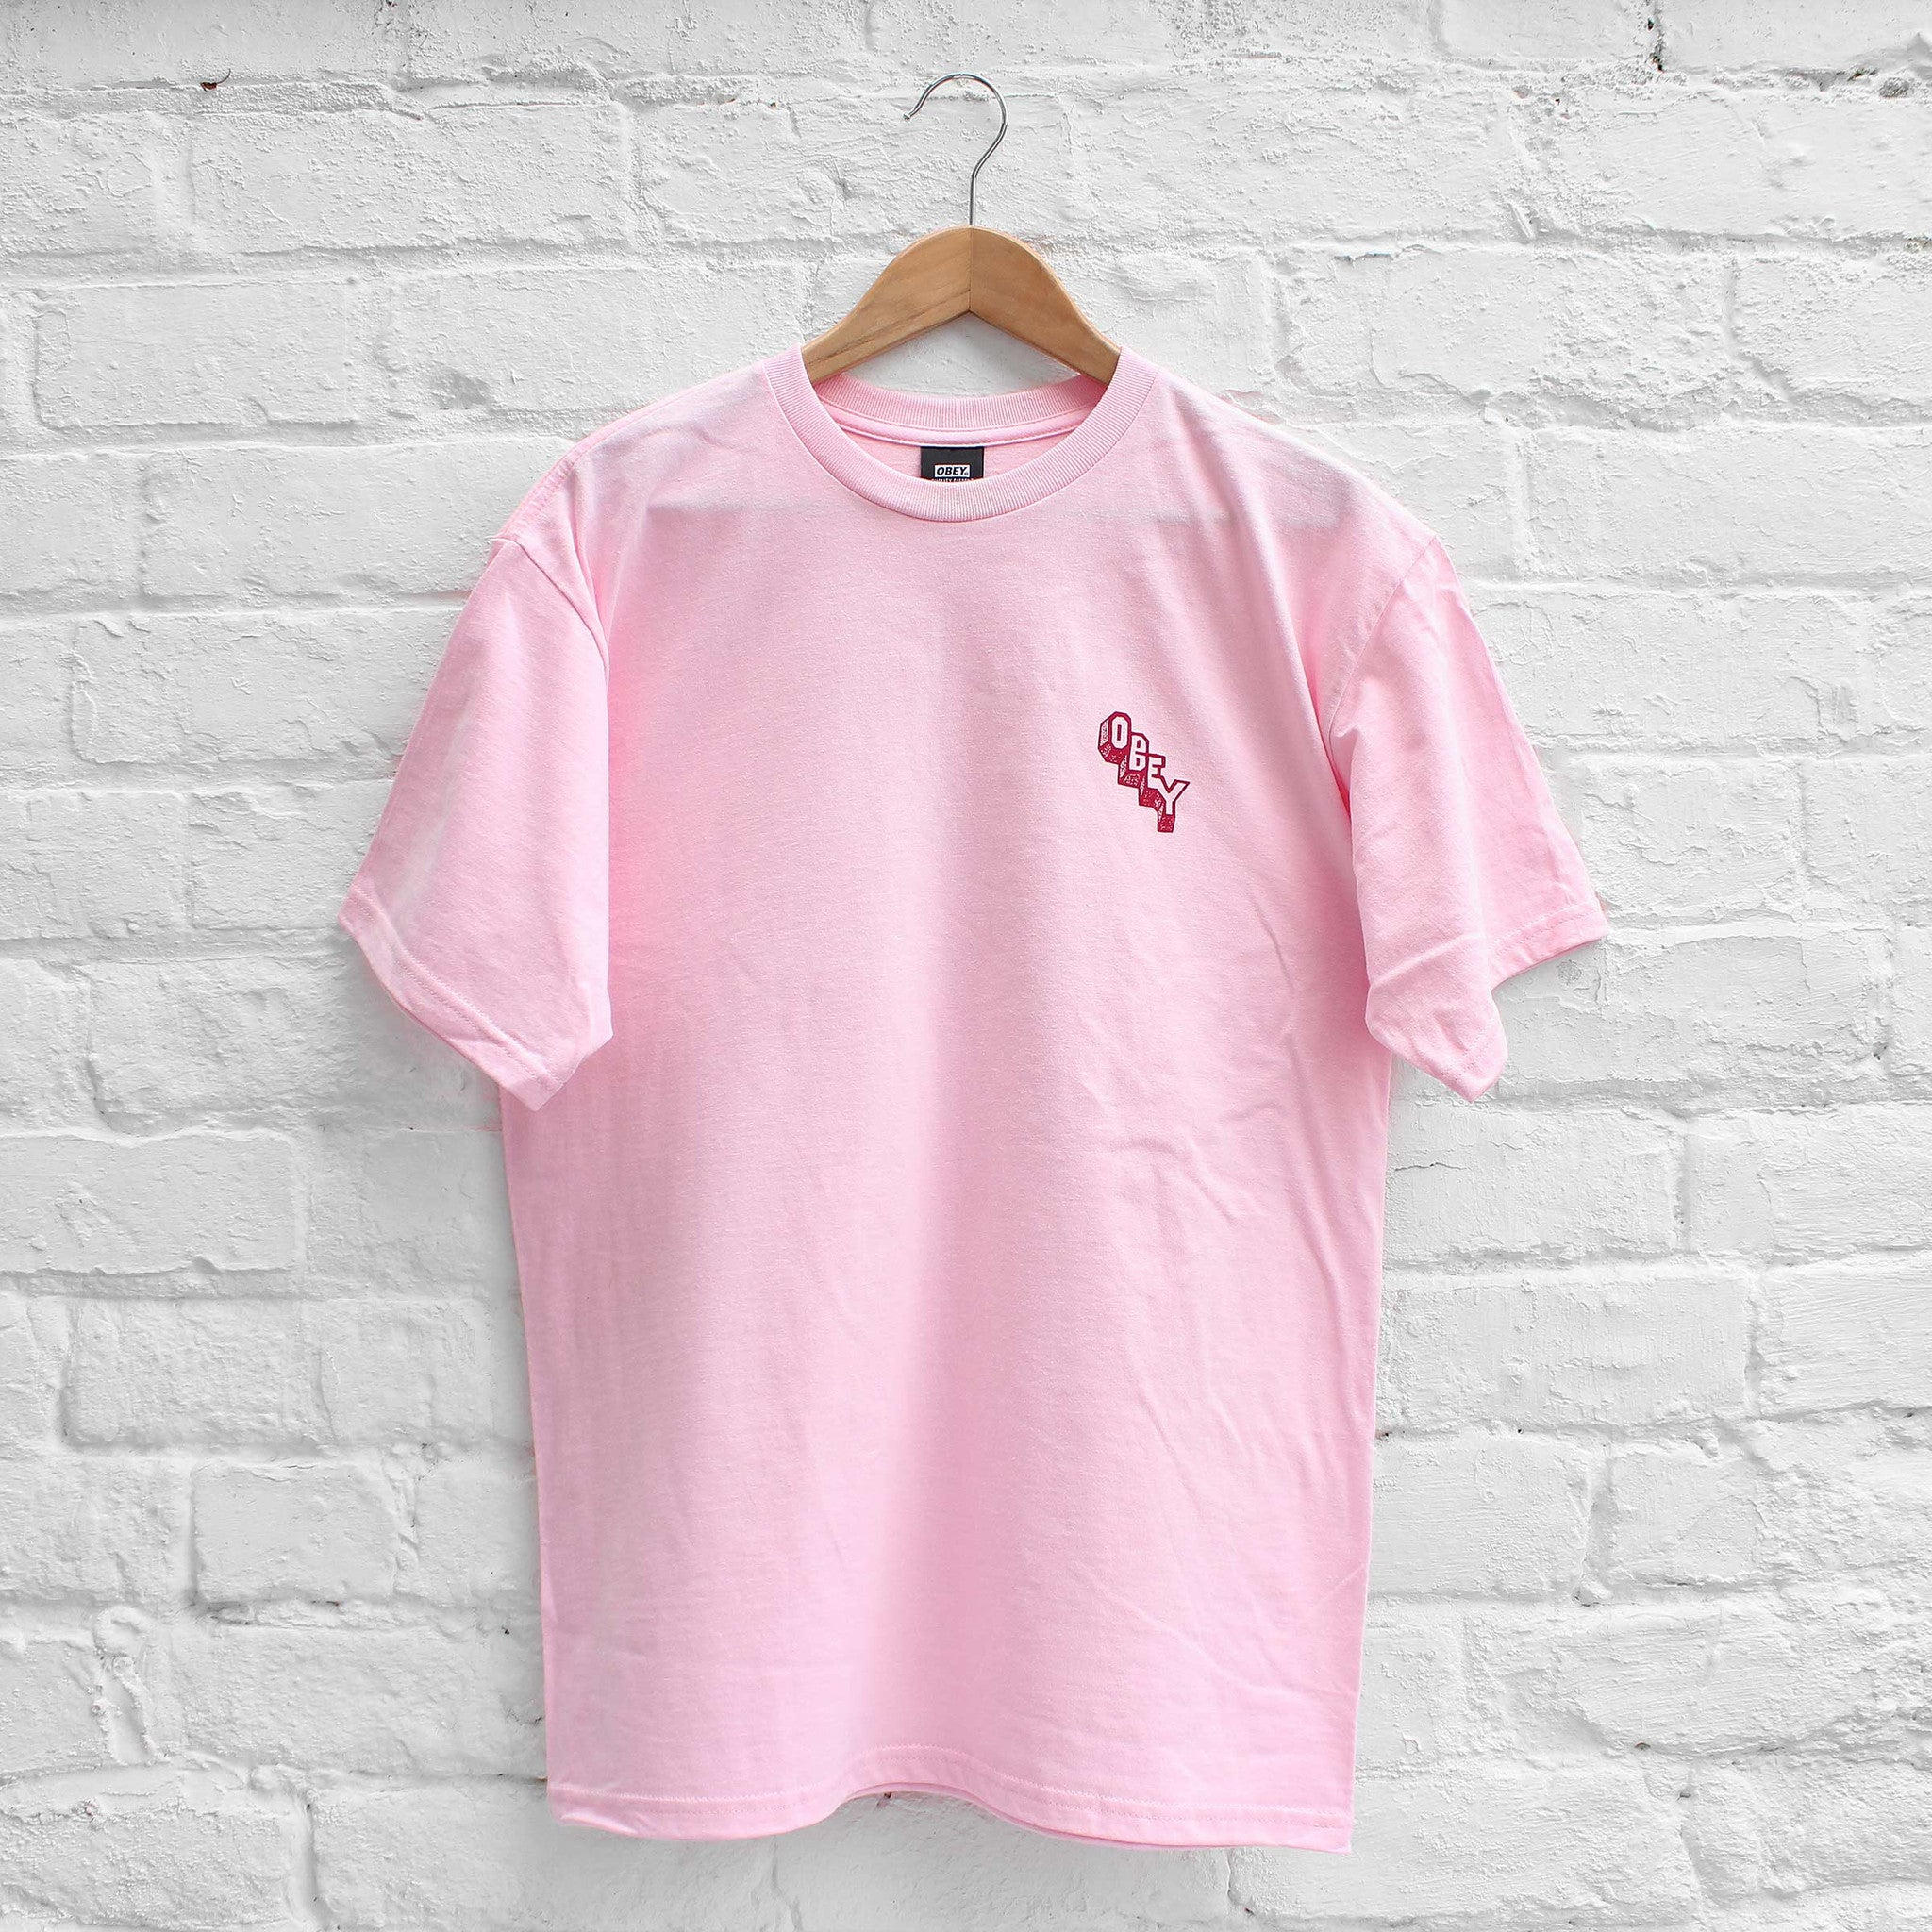 Obey Marker Block T-Shirt Pink